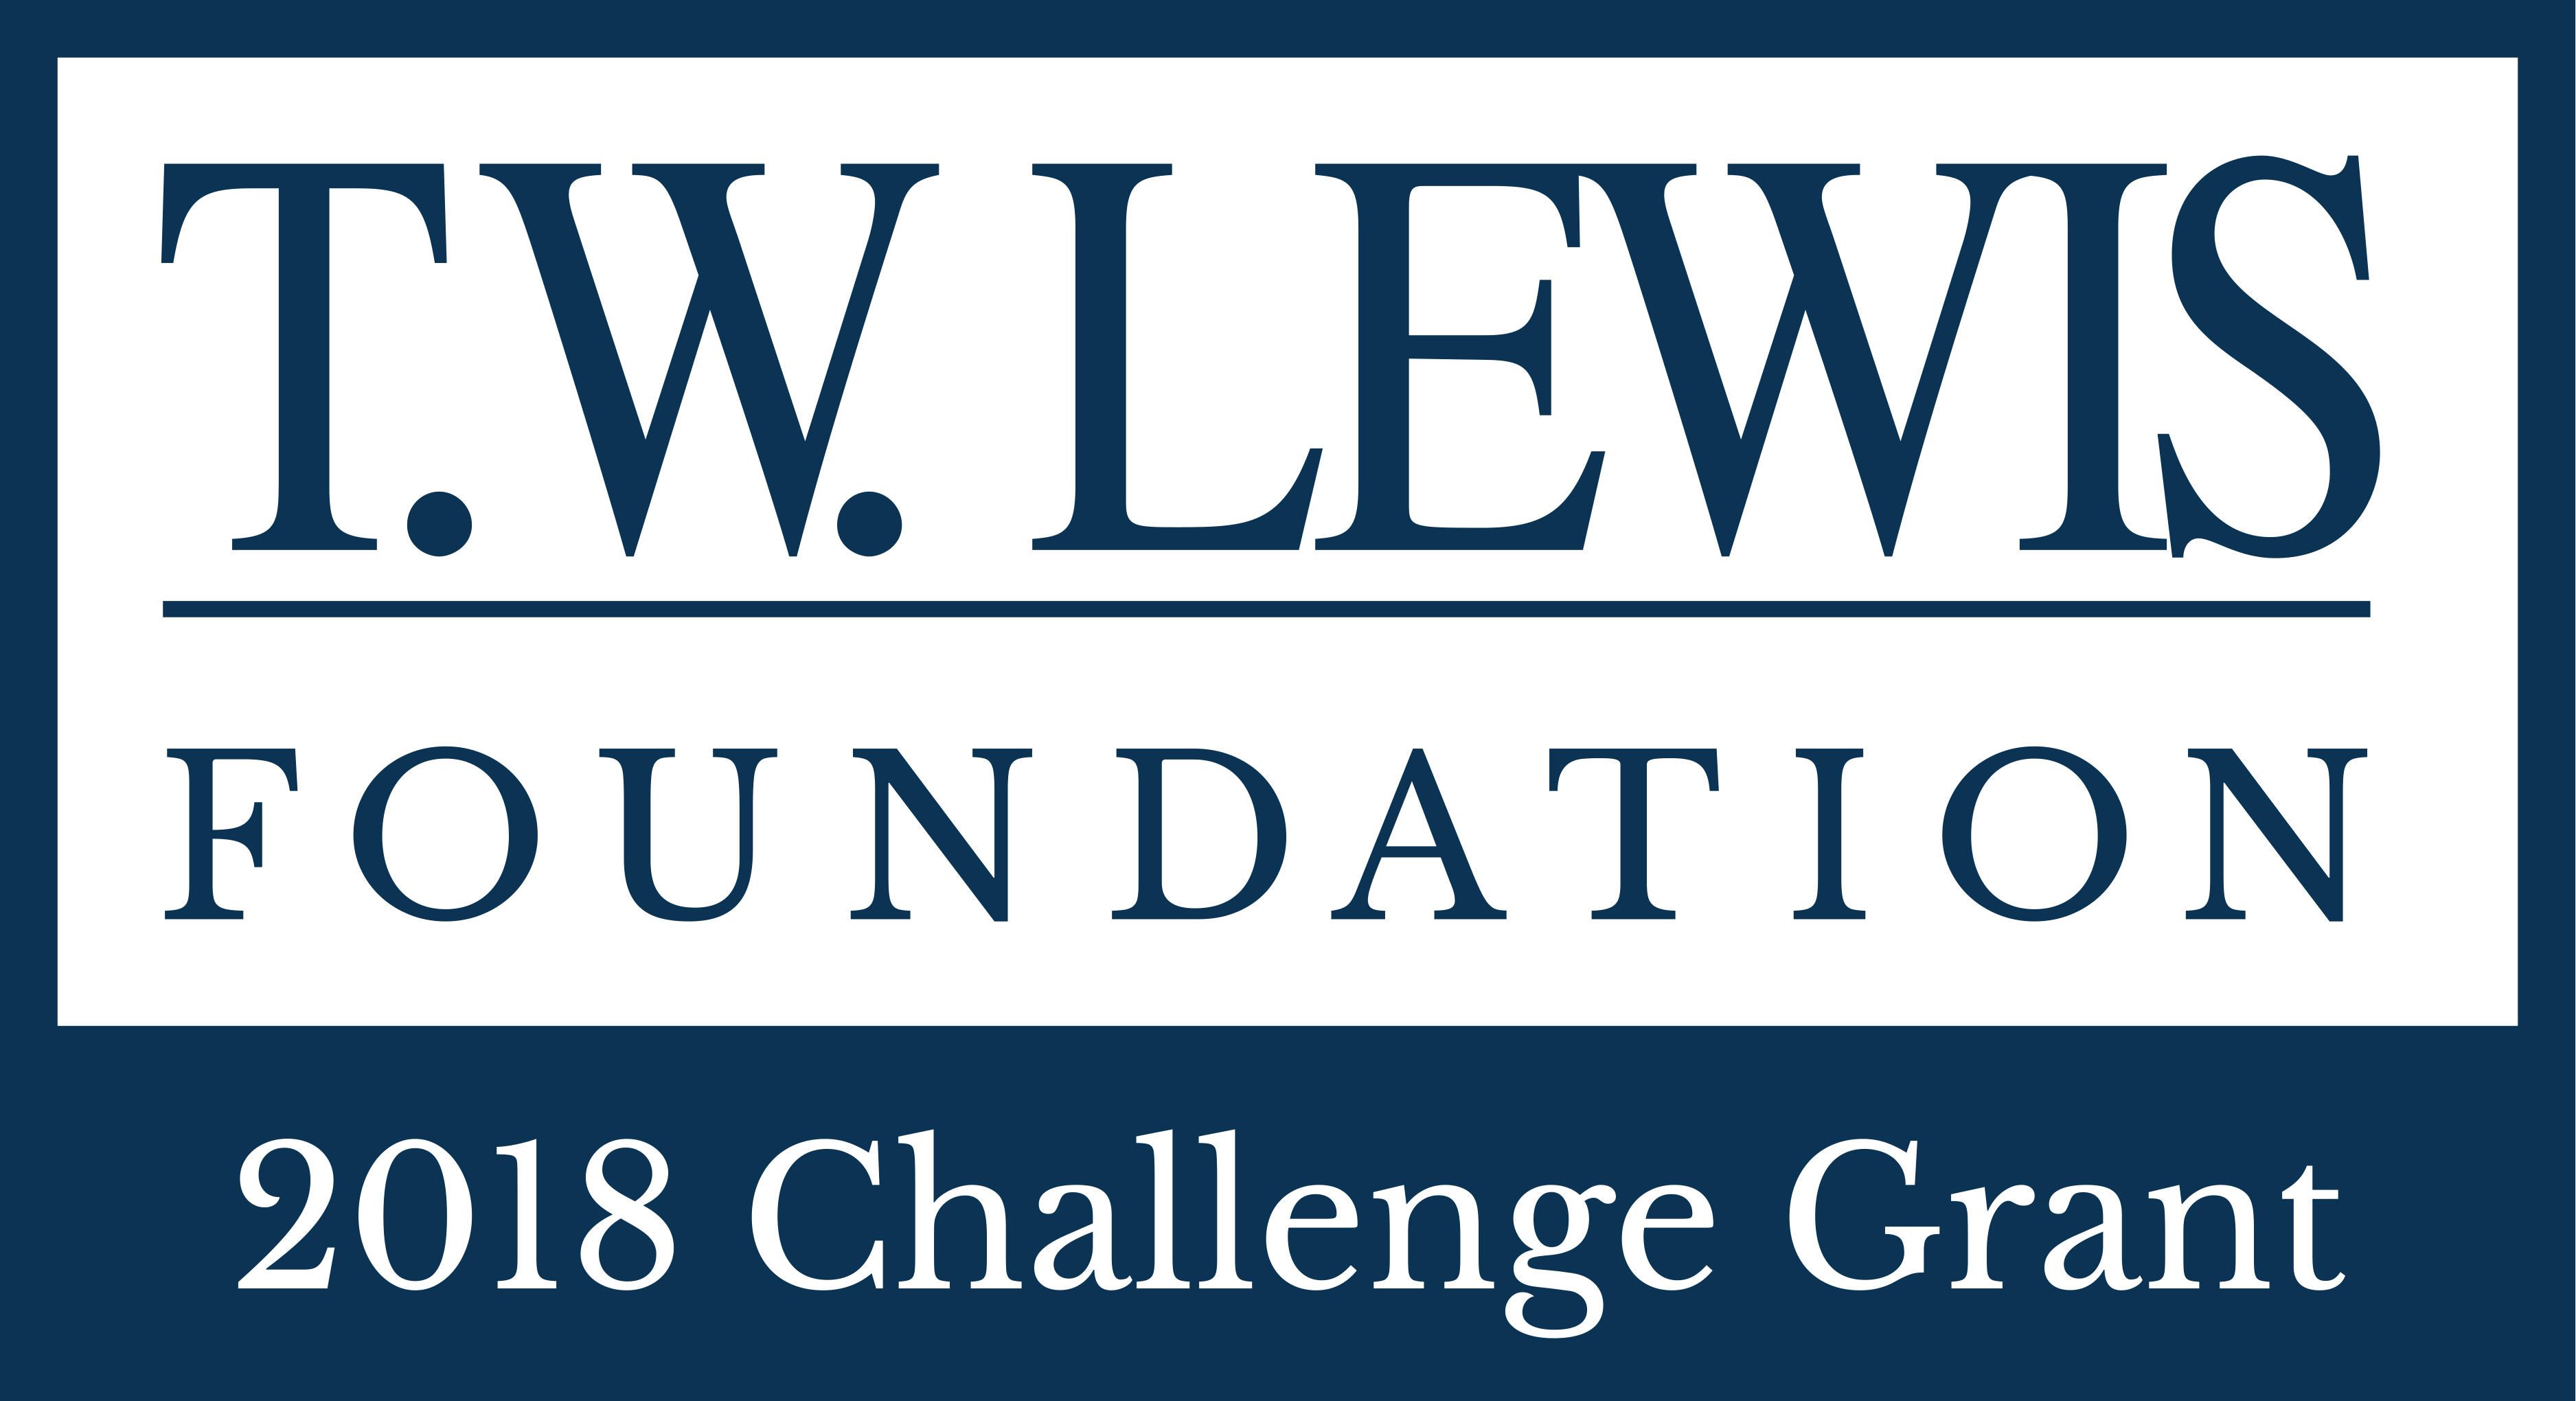 T.W. Lewis Foundation